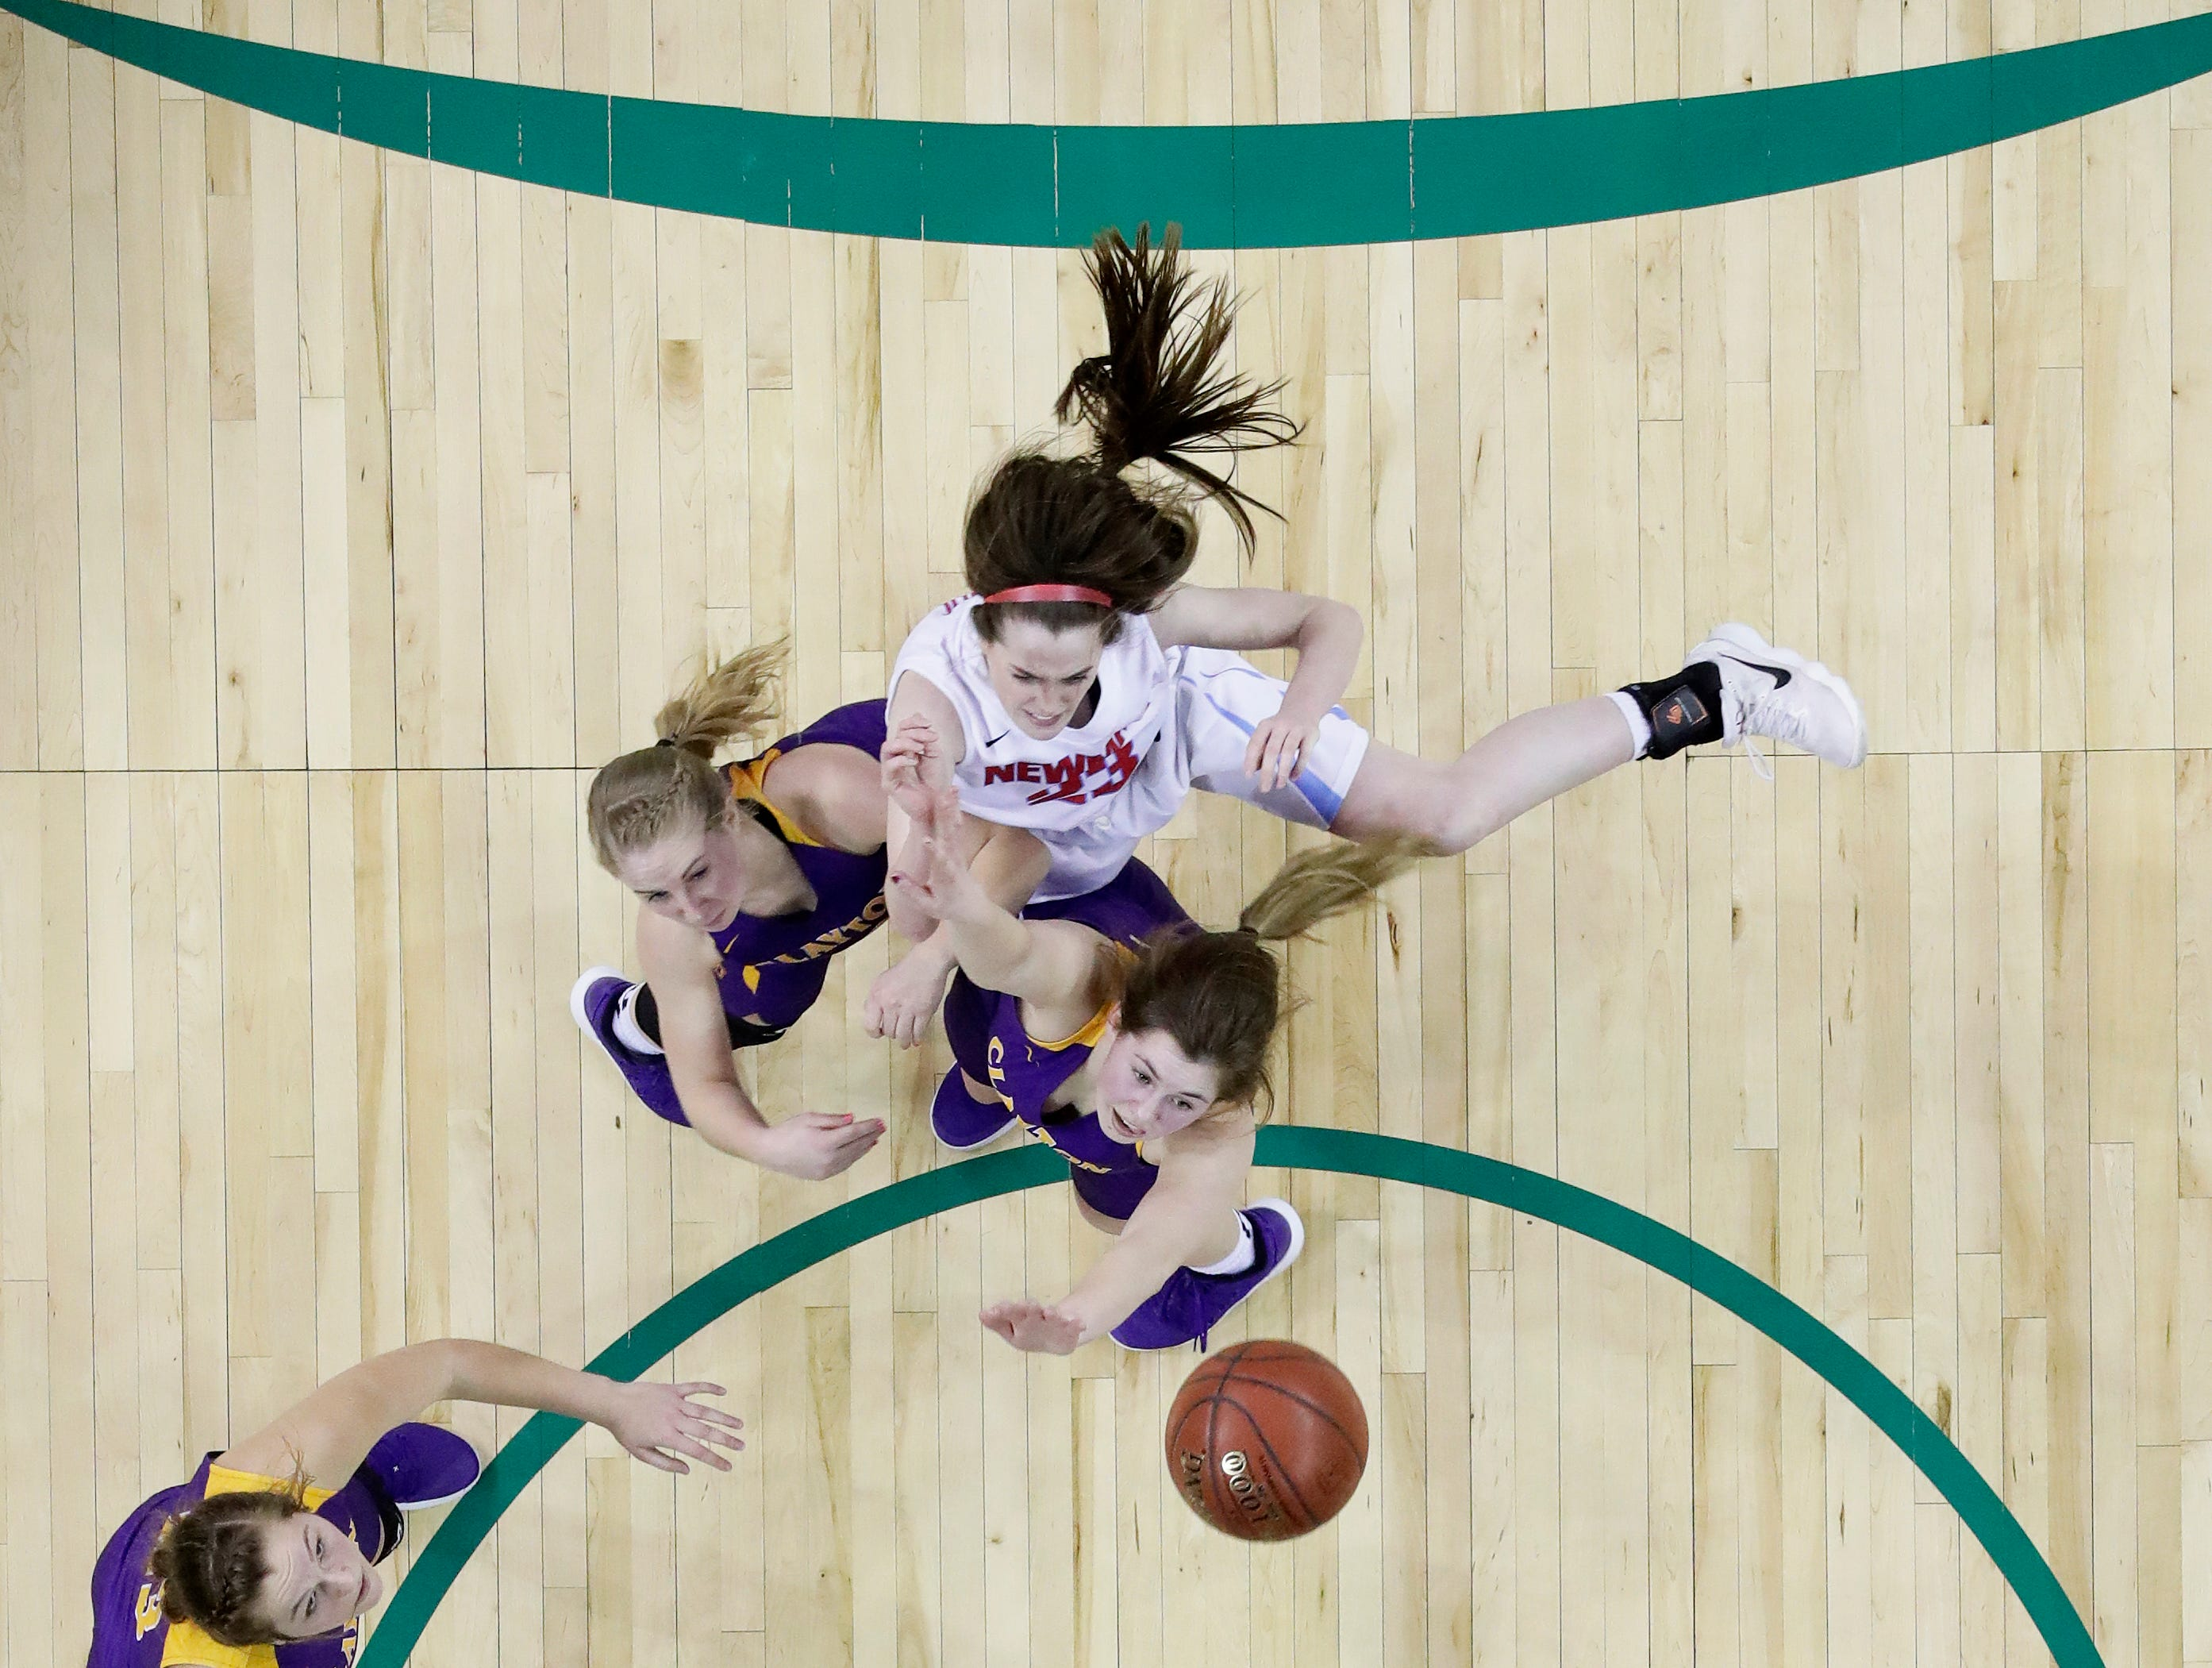 Wausau Newman Catholic's Lauren Shields (23) shoots against Clayton in a Division 5 semifinal at the WIAA state girls basketball tournament at the Resch Center on Friday, March 8, 2019 in Ashwaubenon, Wis.